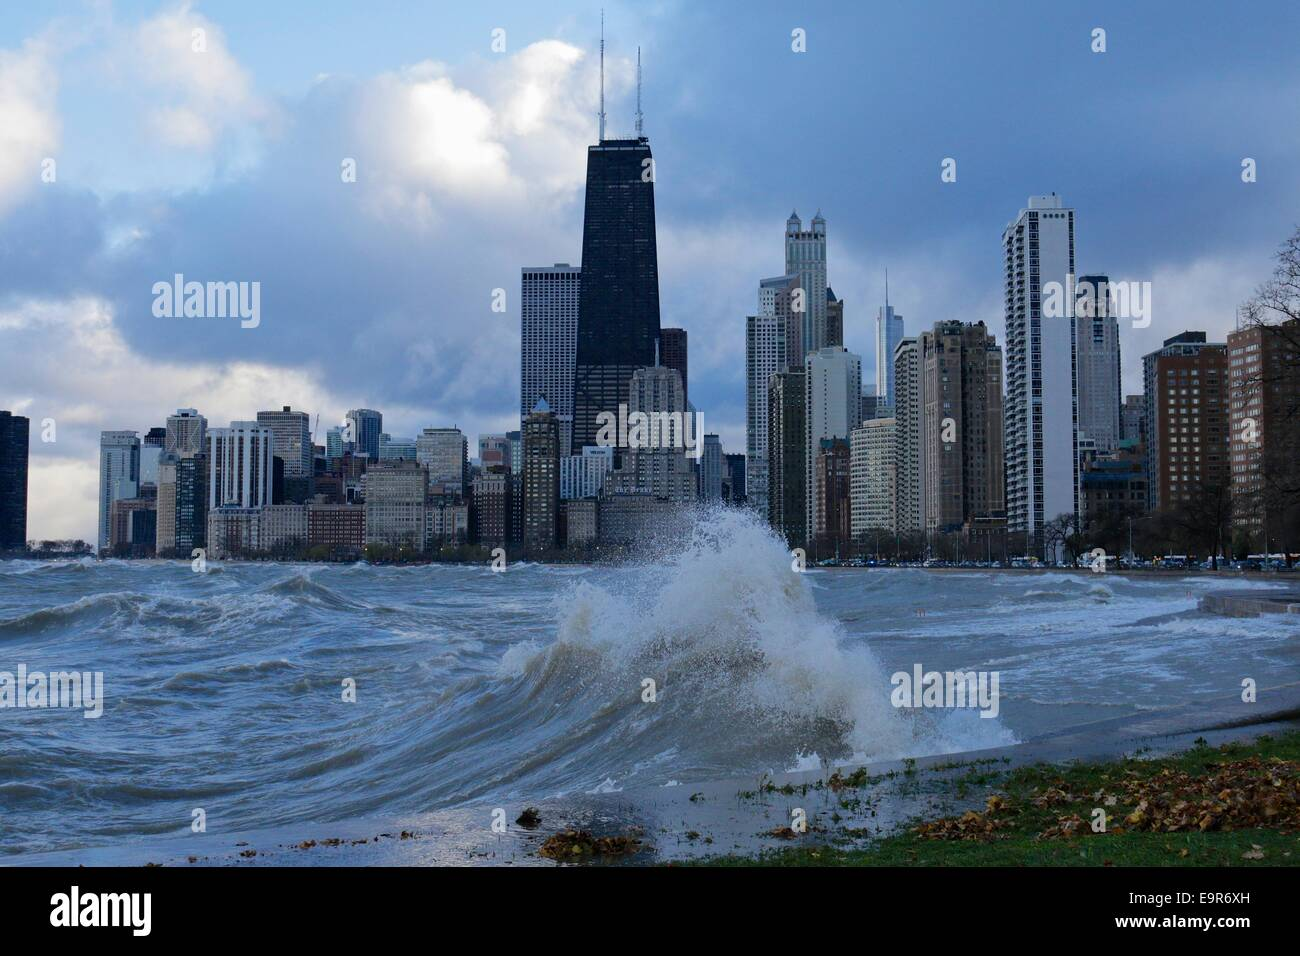 Chicago, Illinois, USA. 31st October, 2014. Huge Lake Michigan waves raised by gale force winds forced the closing Stock Photo